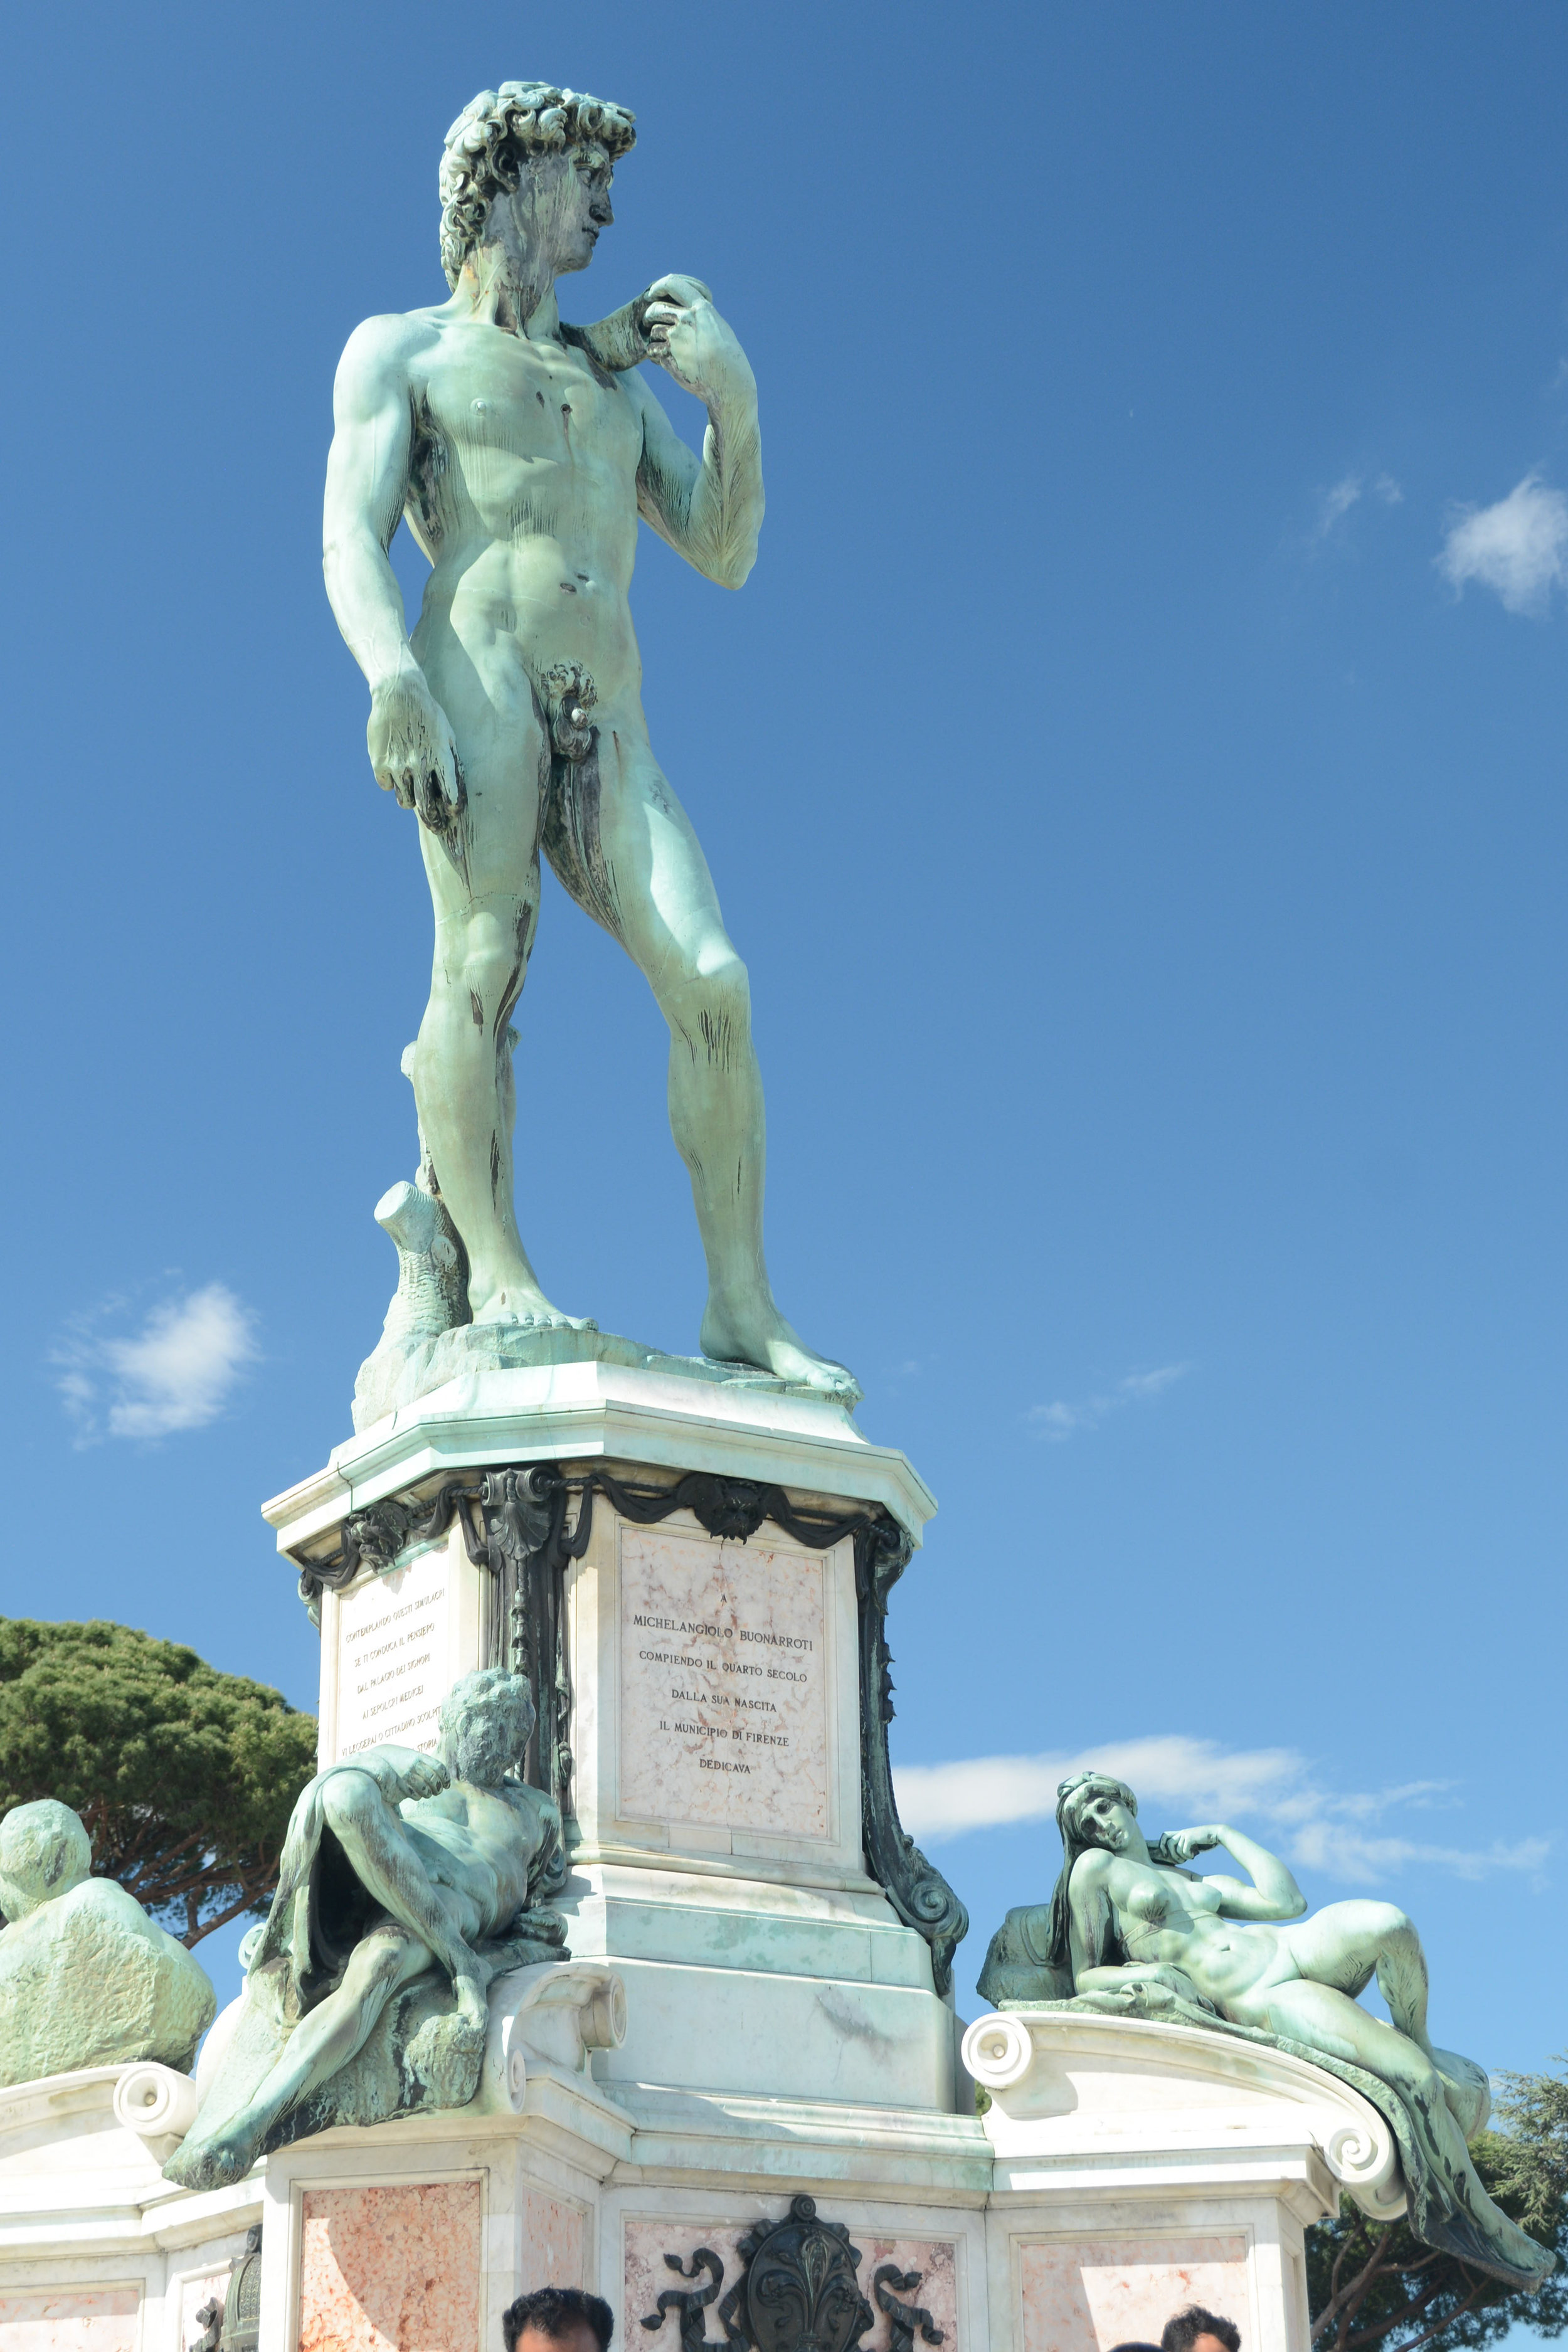 Replica of David with some lounging ladies in Michelangelo Square where the tour buses gather.